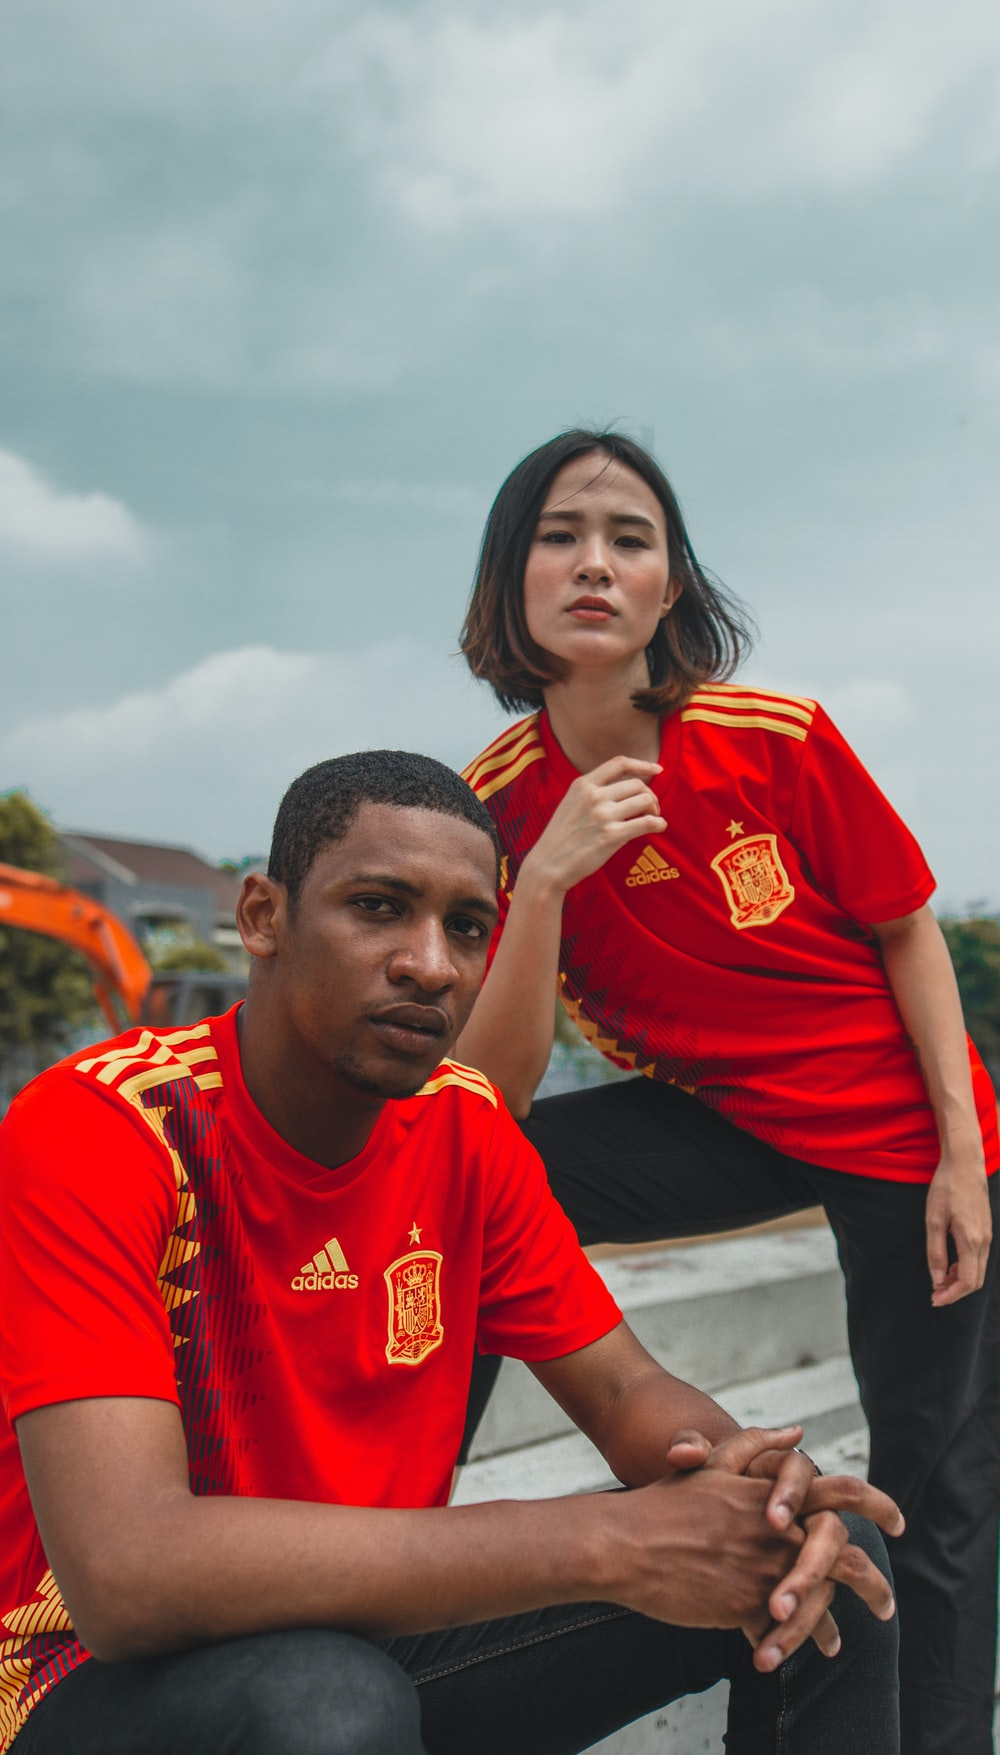 woman wearing red and yellow shirt beside man wearing red and yellow adidas shirts